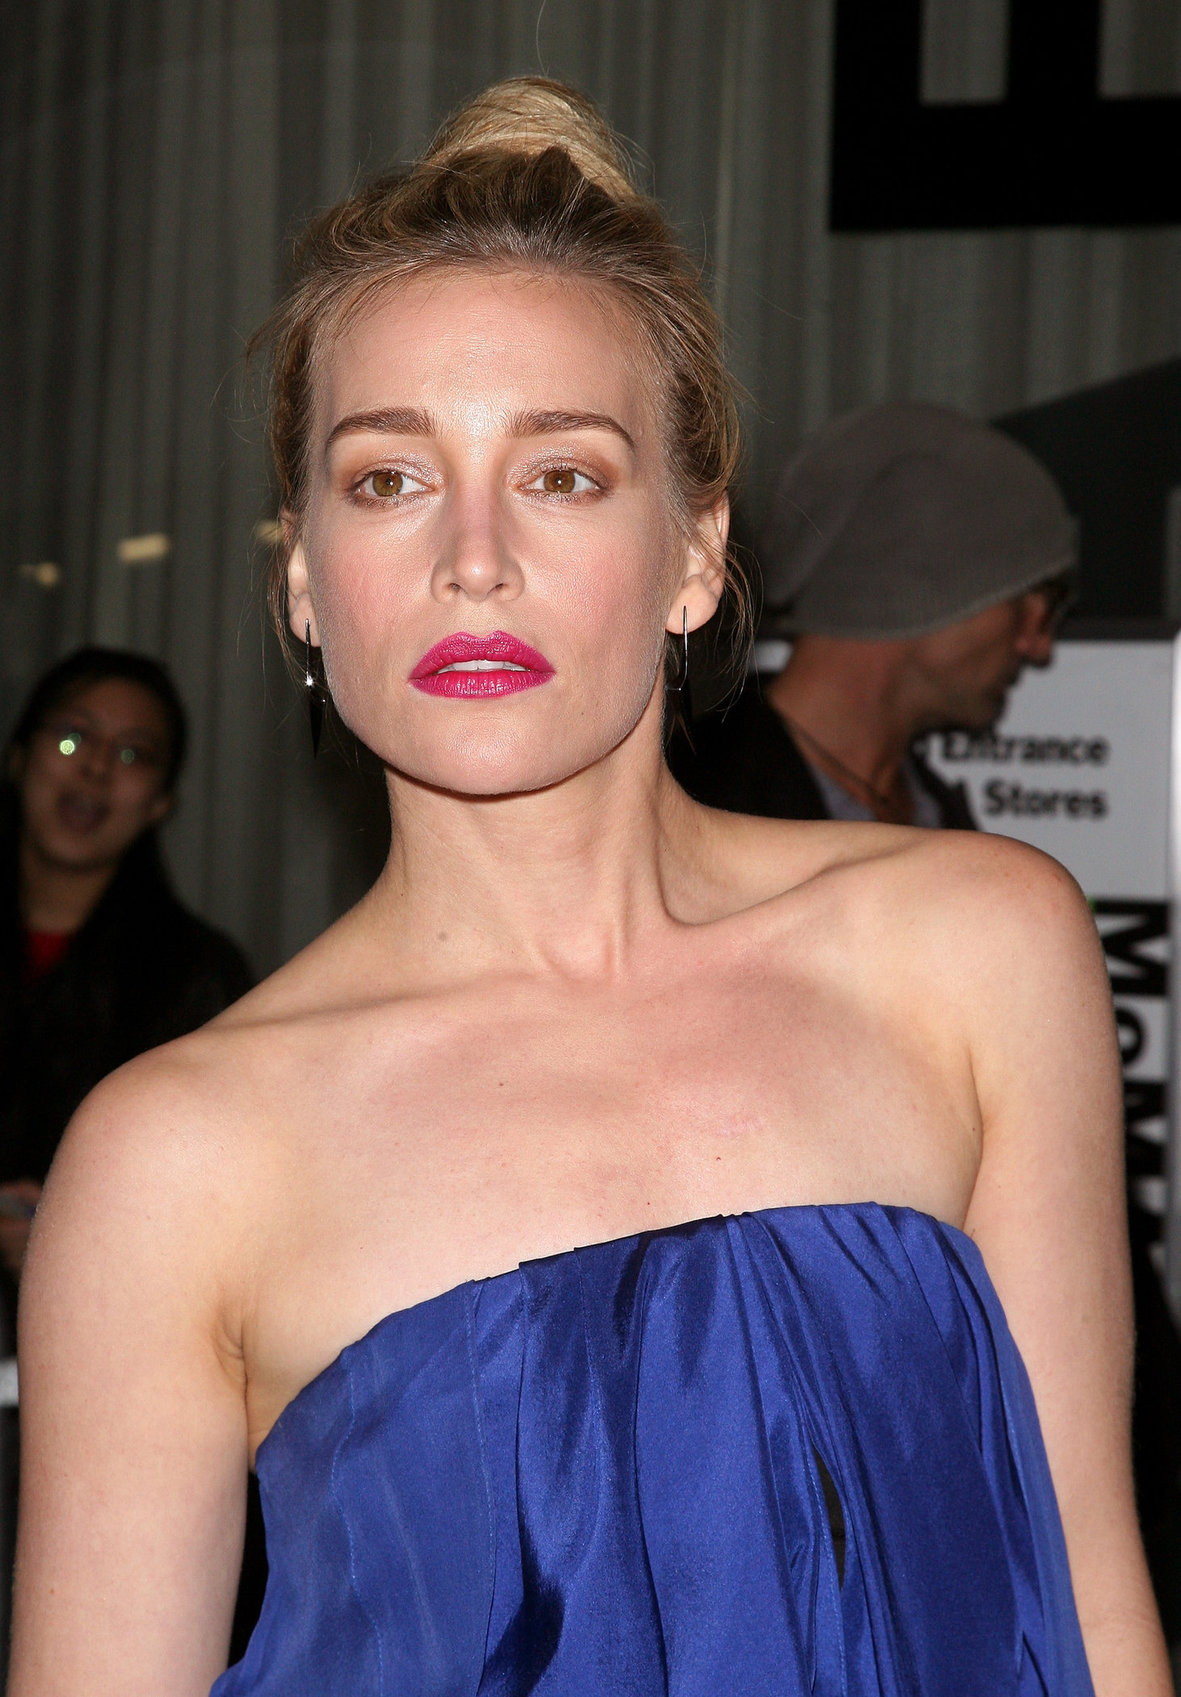 Piper Perabo - Attends a special screening of The Great Gatsby at MOMA in New York City (05.05.2013)